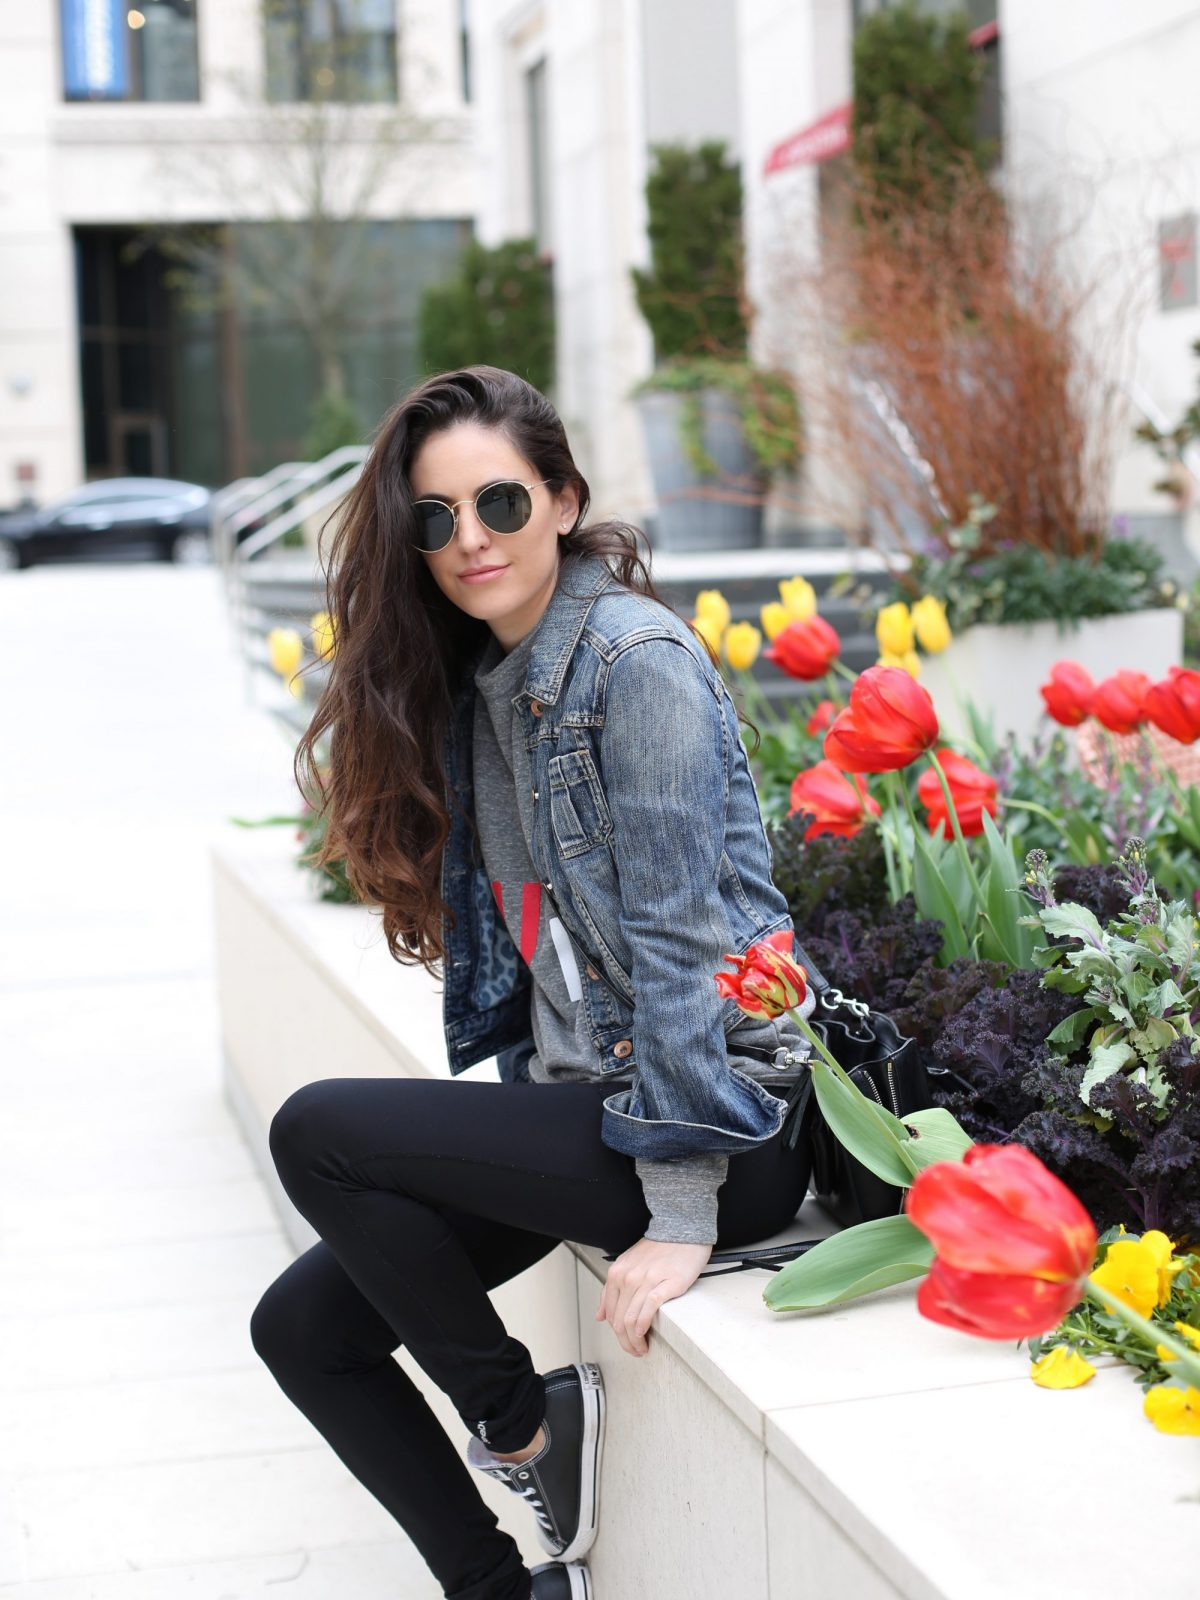 casual cool, sweater weather, casual outfit ideas, comfy outfit ideas, travel style